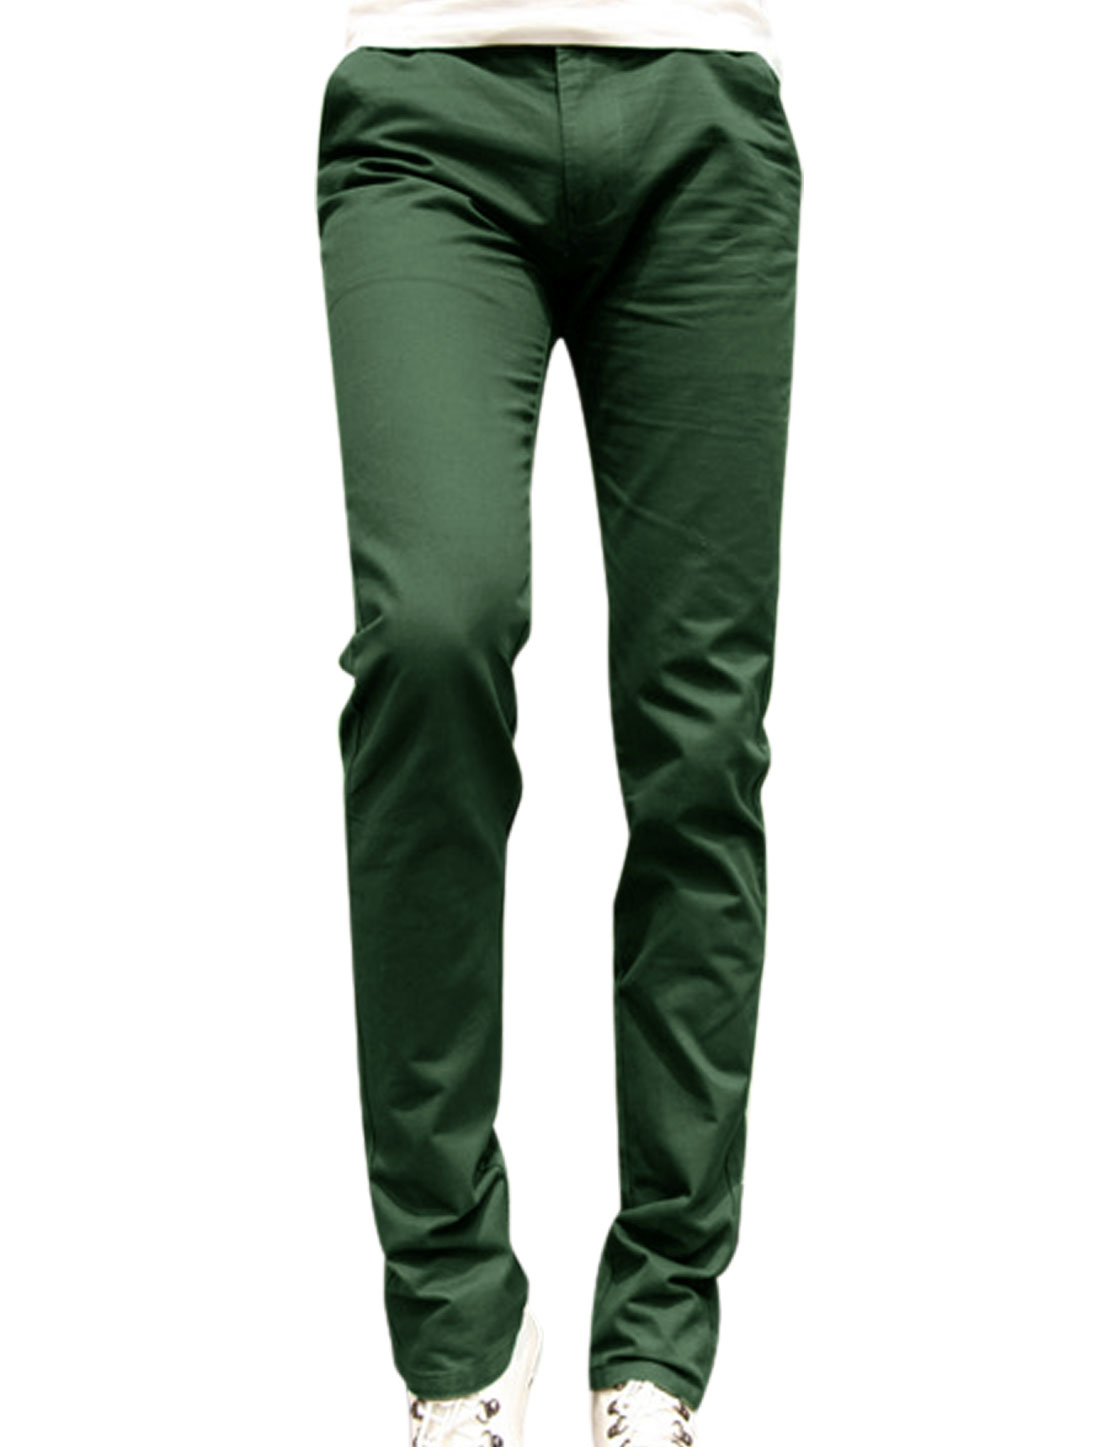 Men Zip Fly Design Button Closed Straight Leg Pants Army Green W30